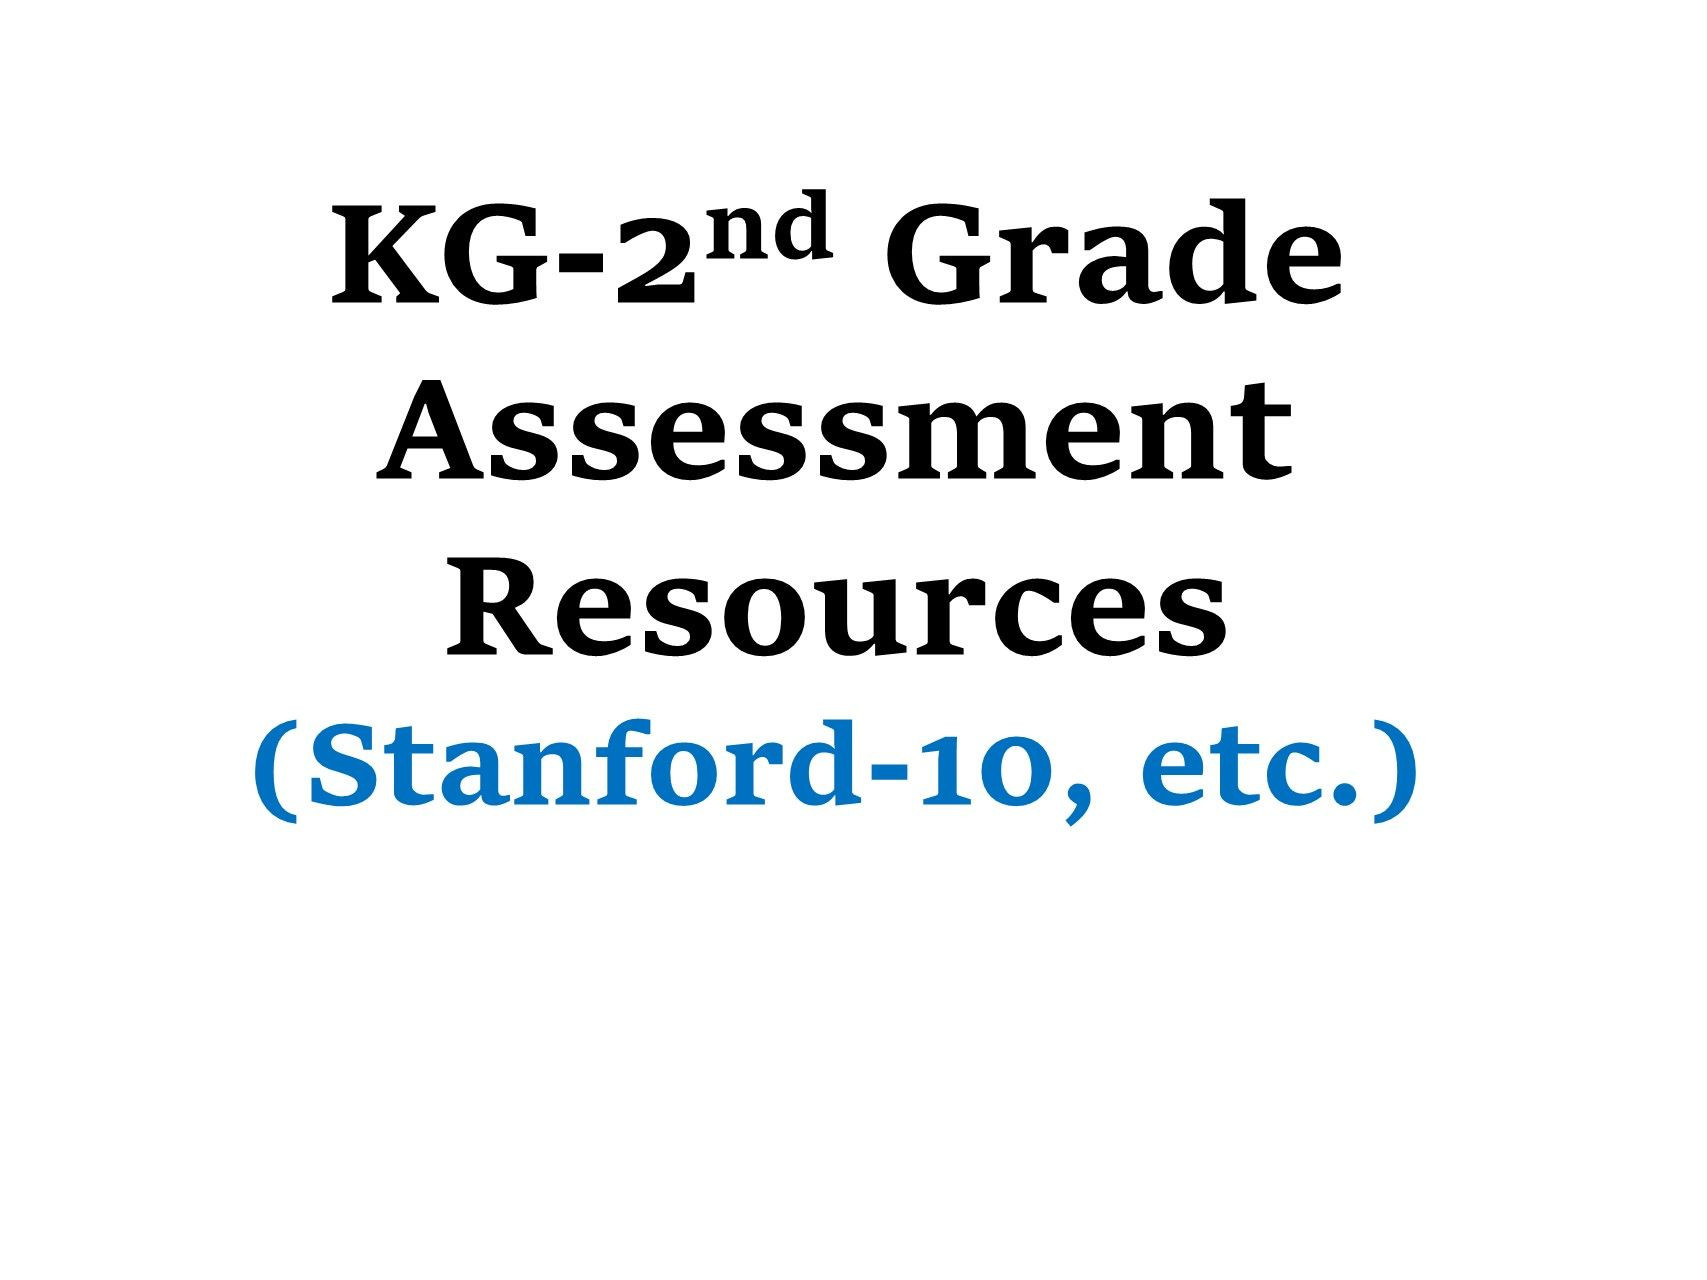 Test Taking Skills Worksheets Download Here to Test assessment Resources Such as Sat